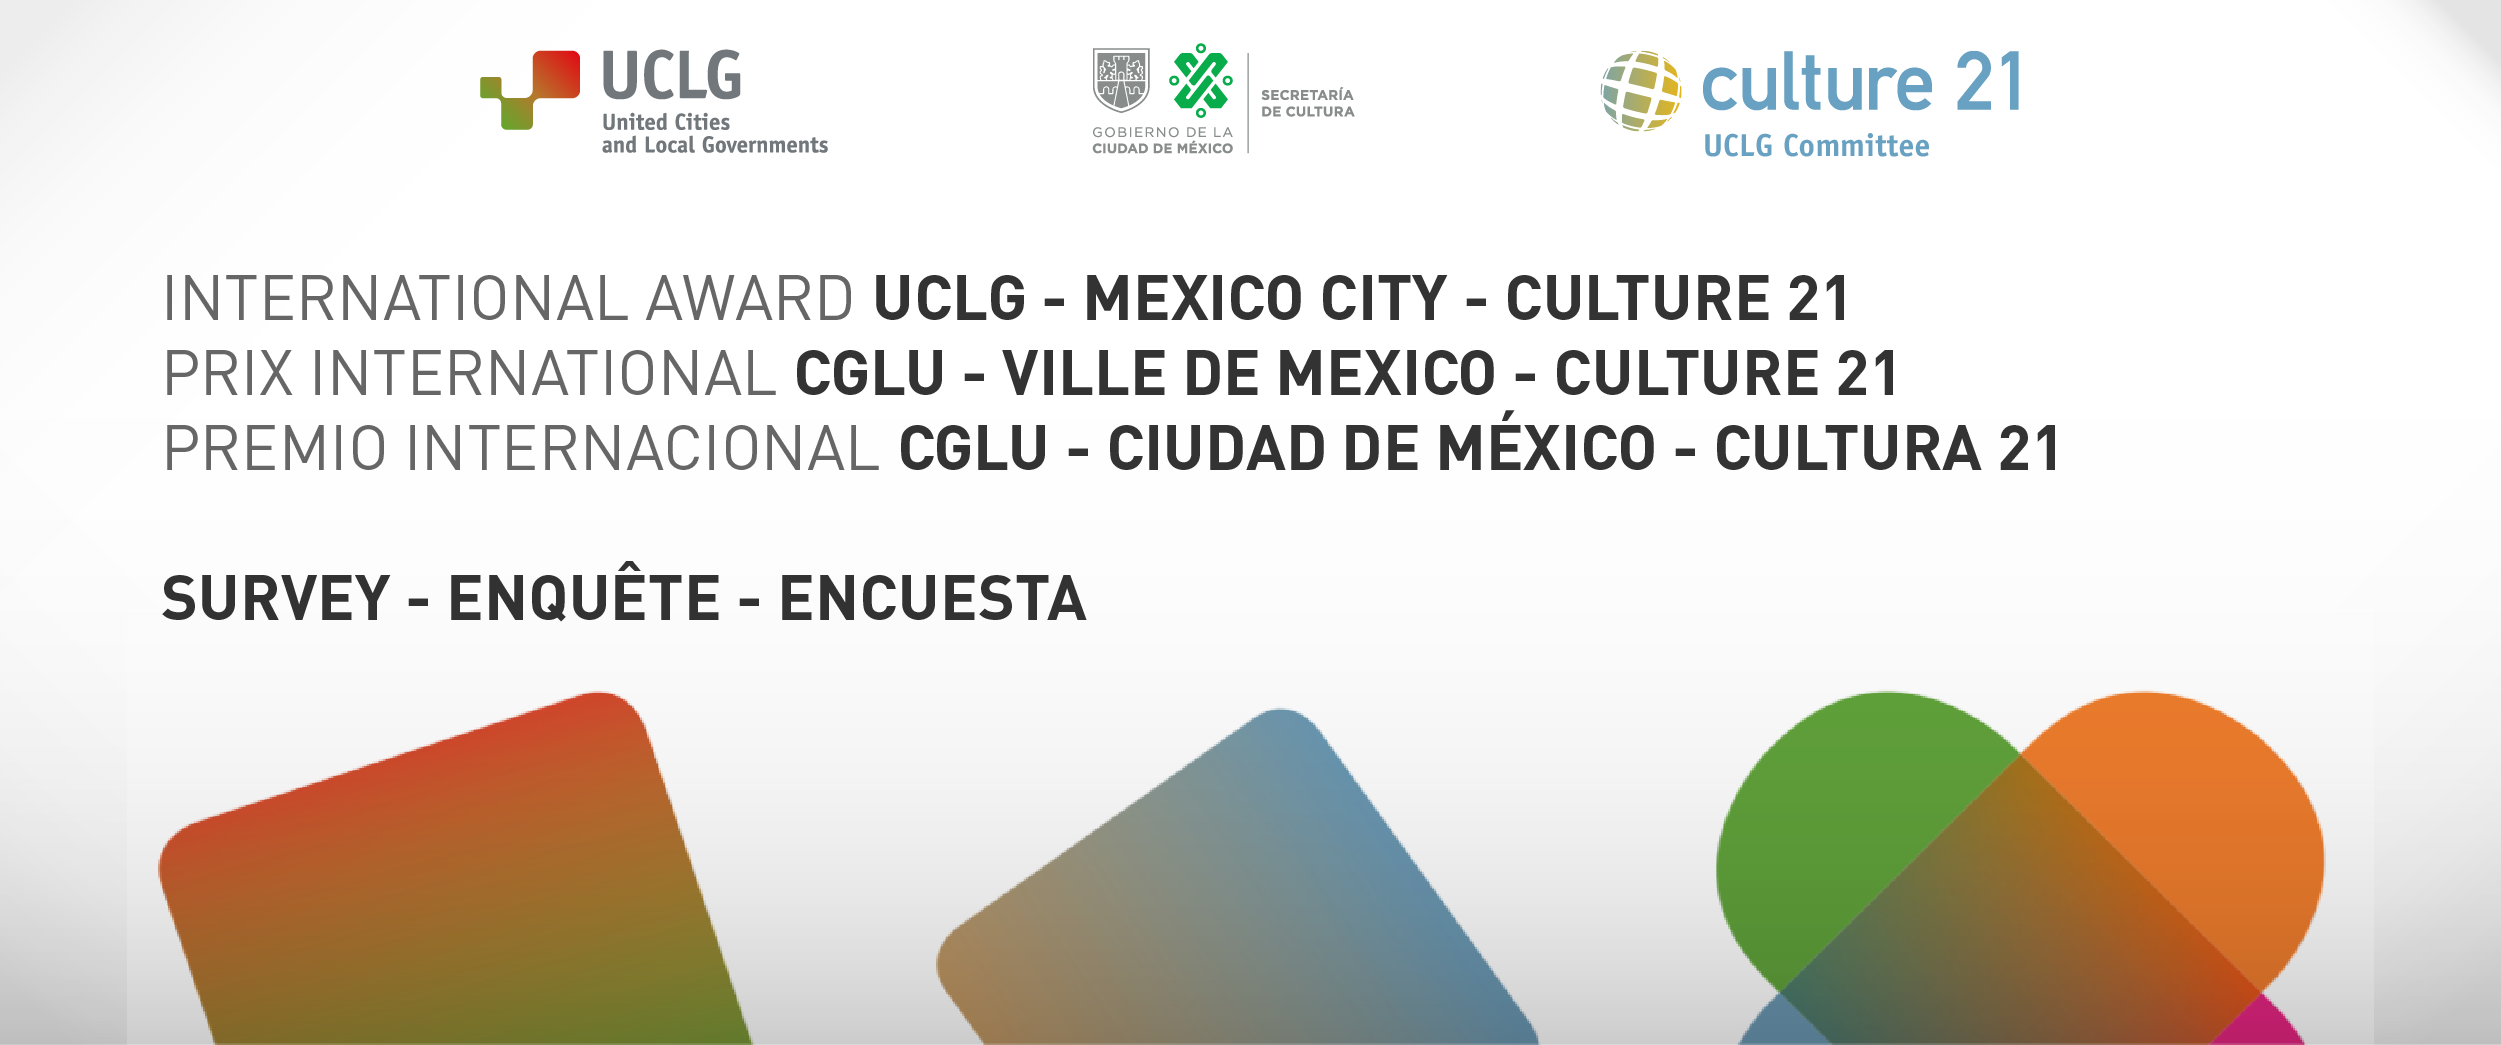 2nd Uclg Culture Summit